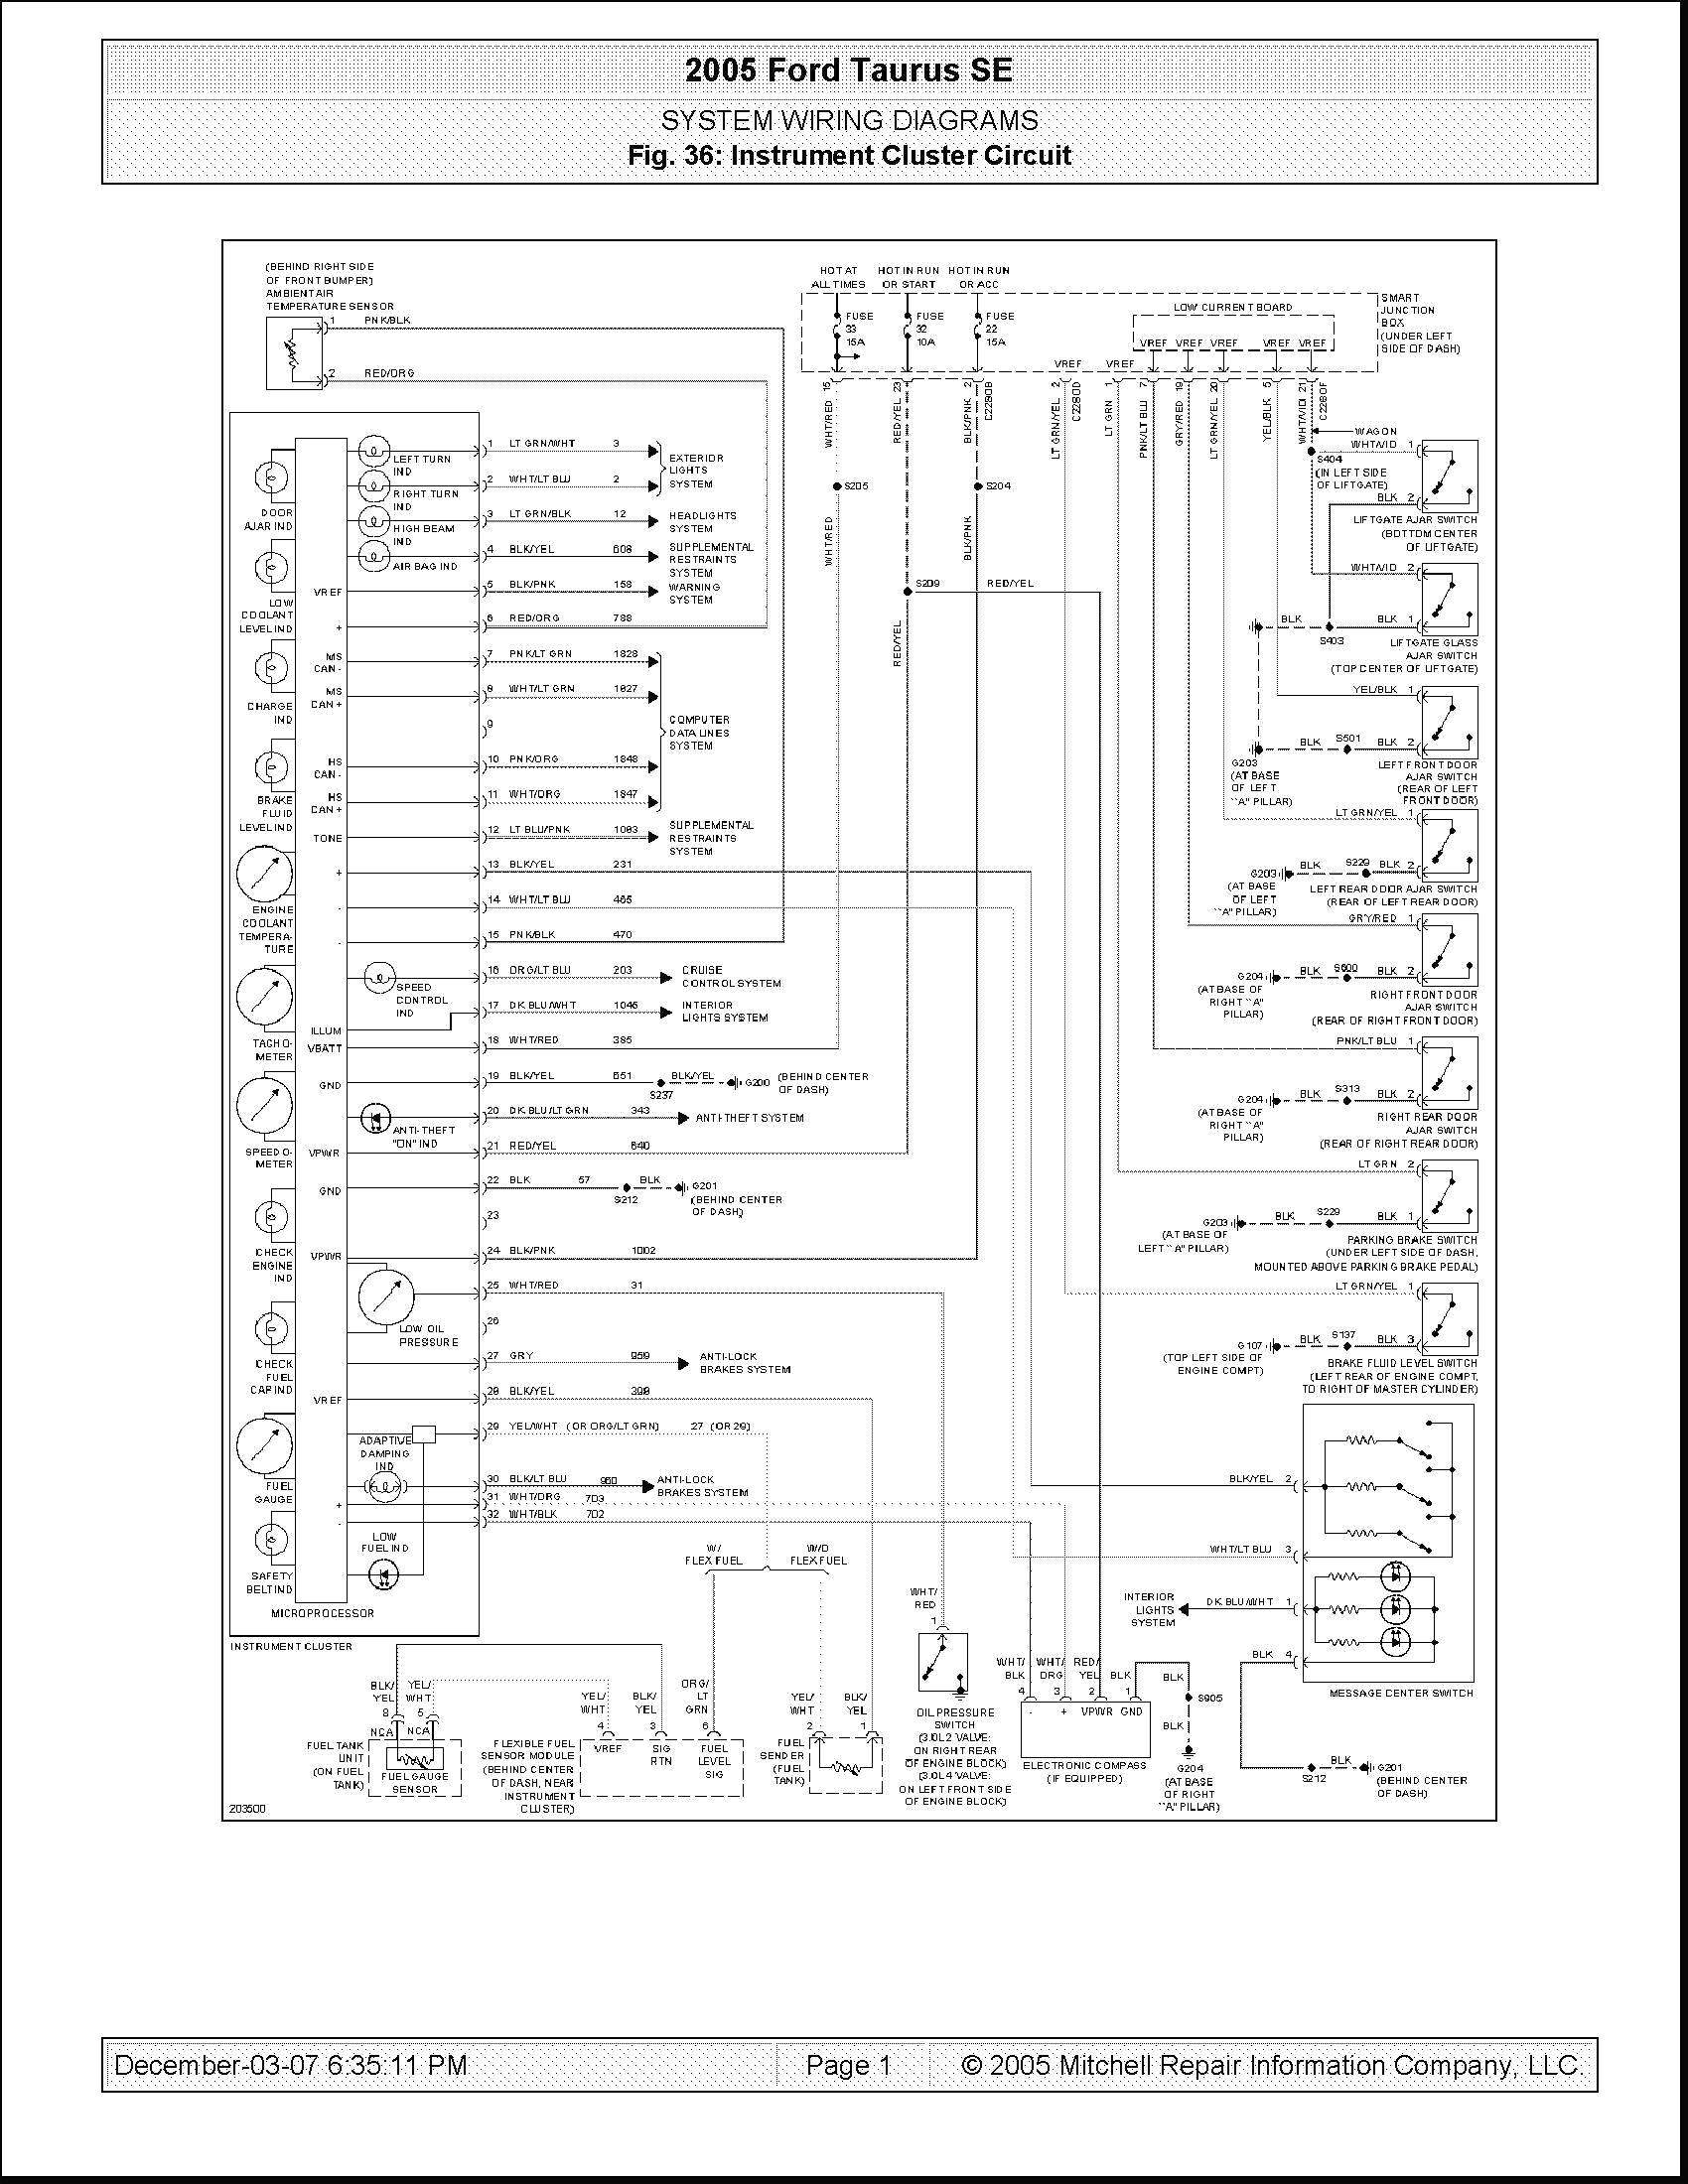 2003 Ford Wiring Schematic - Wiring Diagrams A Light For Ford Taurus Wiring Diagram on